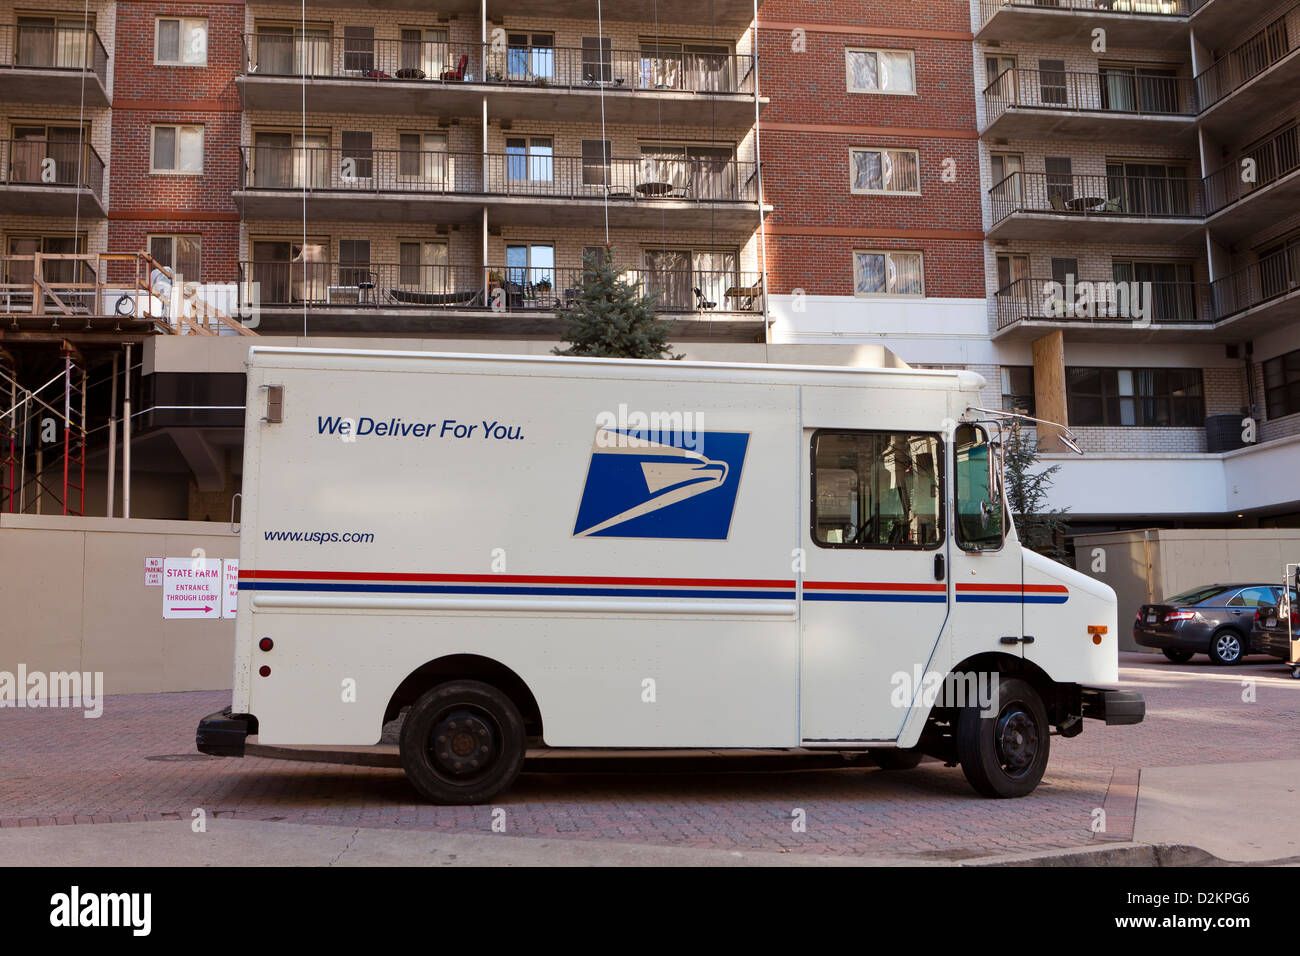 USPS delivery truck parked in front of apartment building - Arlington, Virginia USA Stock Photo